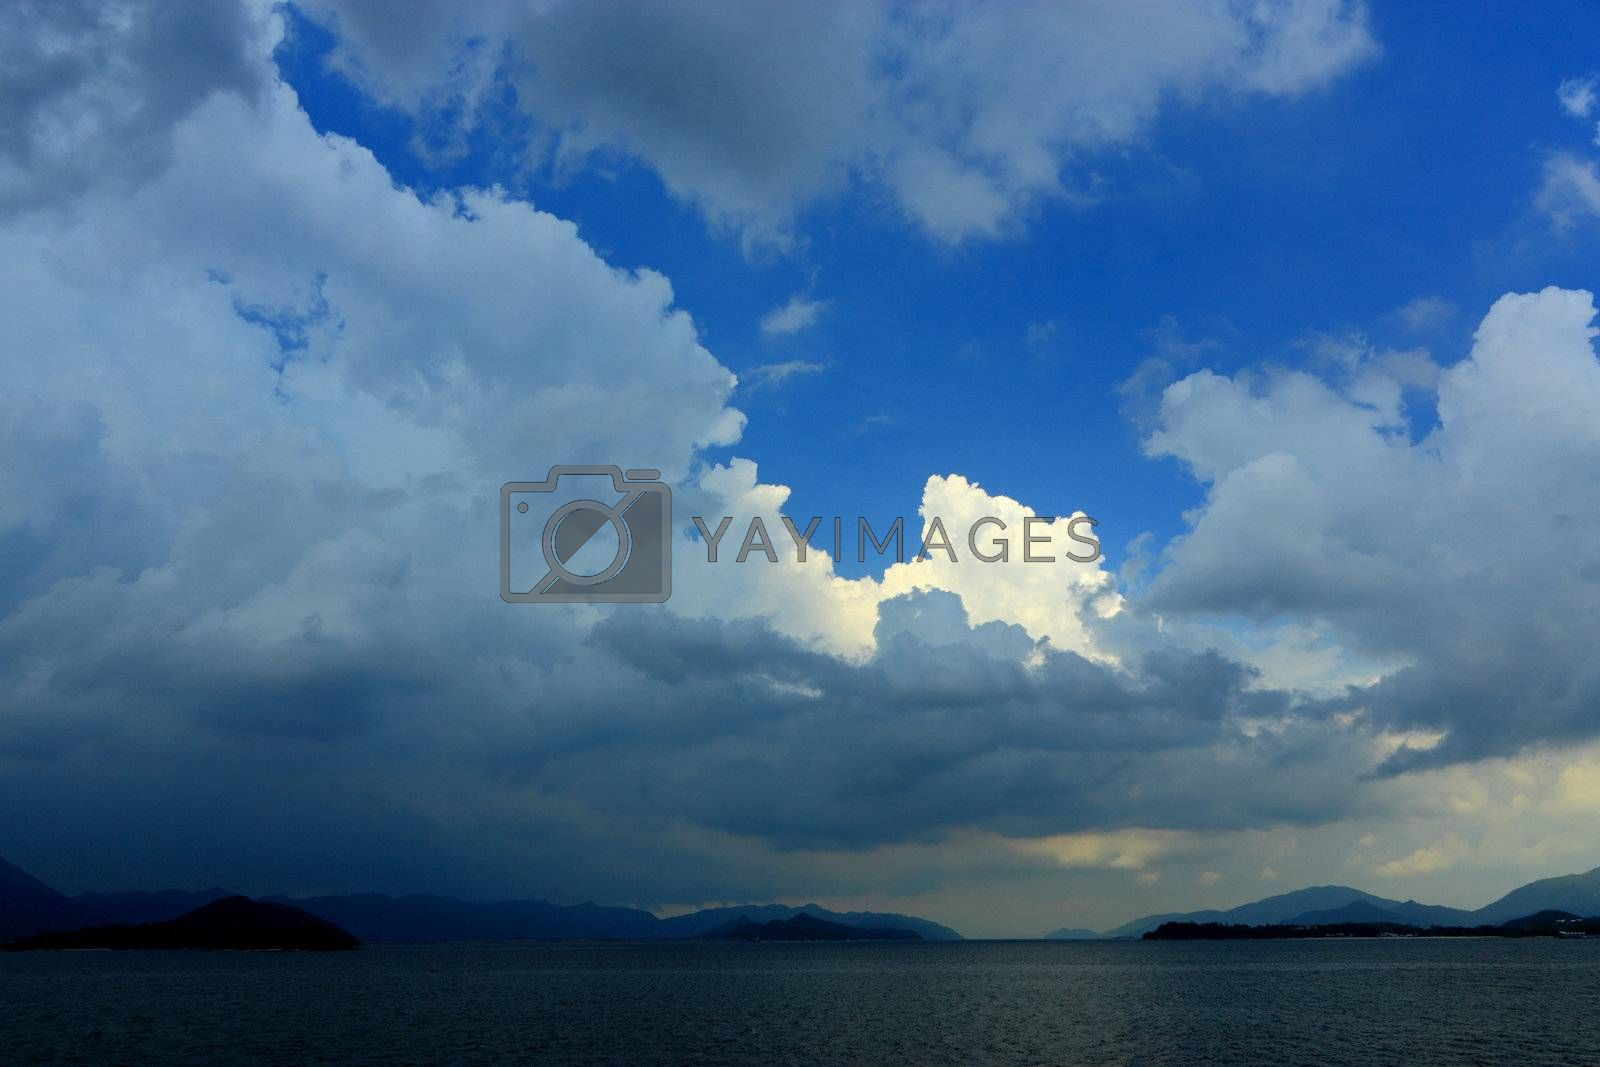 Royalty free image of blue sky with many clouds, after storm by leungchopan